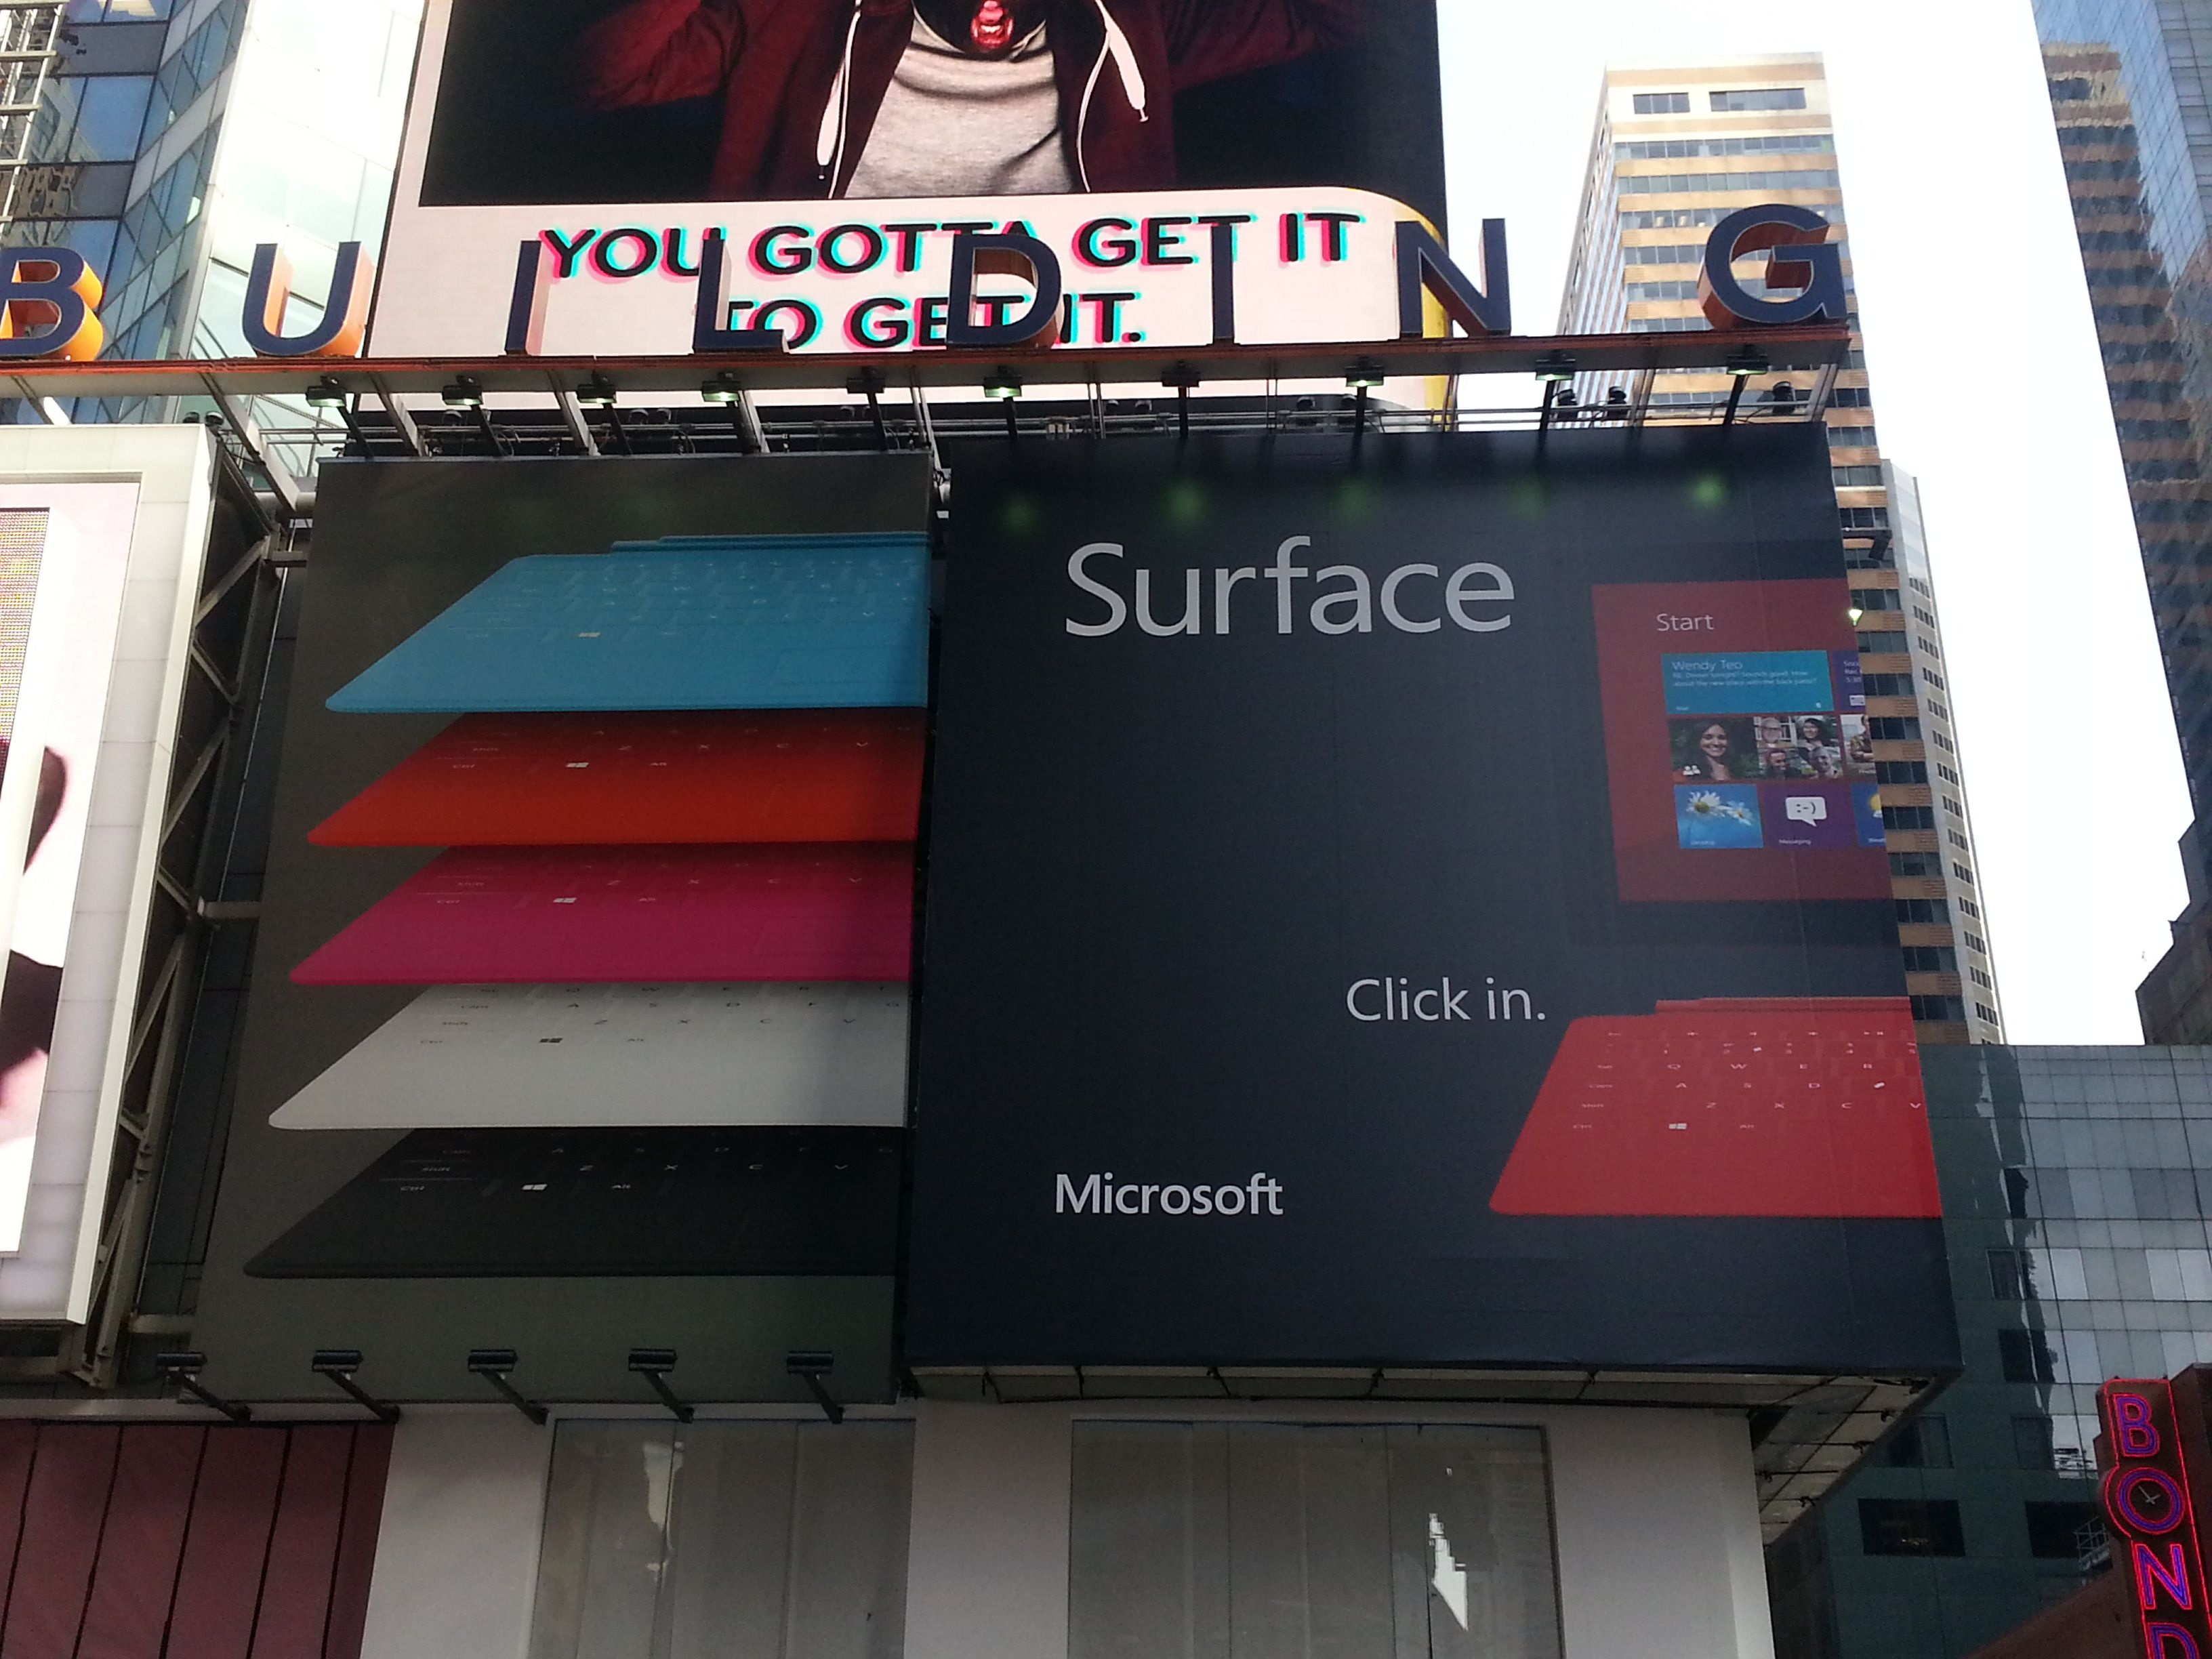 Microsoft Surface Ad Time Square, New York City #6